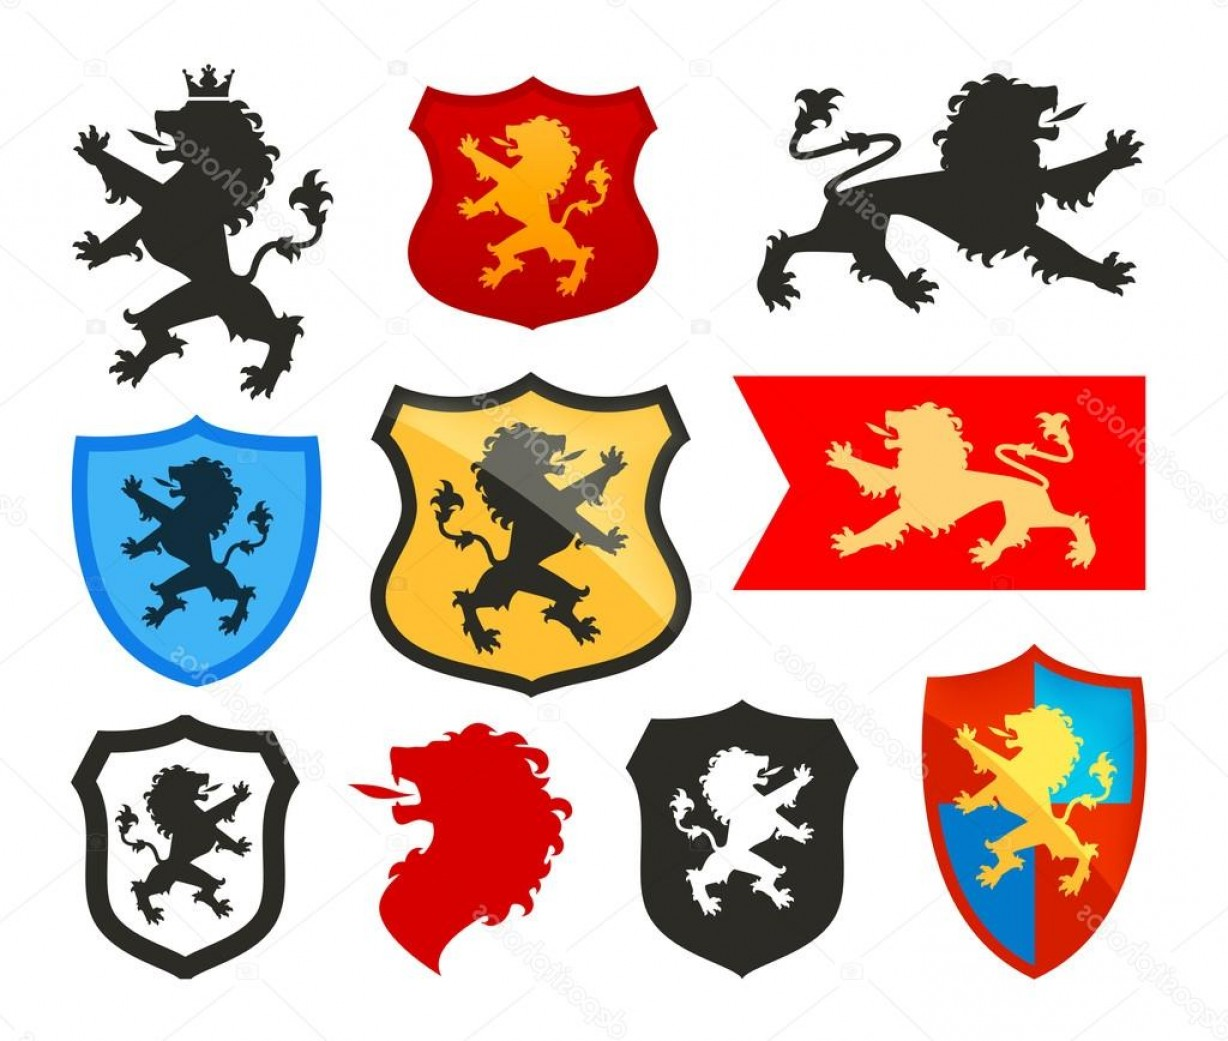 1228x1041 Stock Illustration Shield With Lion Heraldry Vector Arenawp